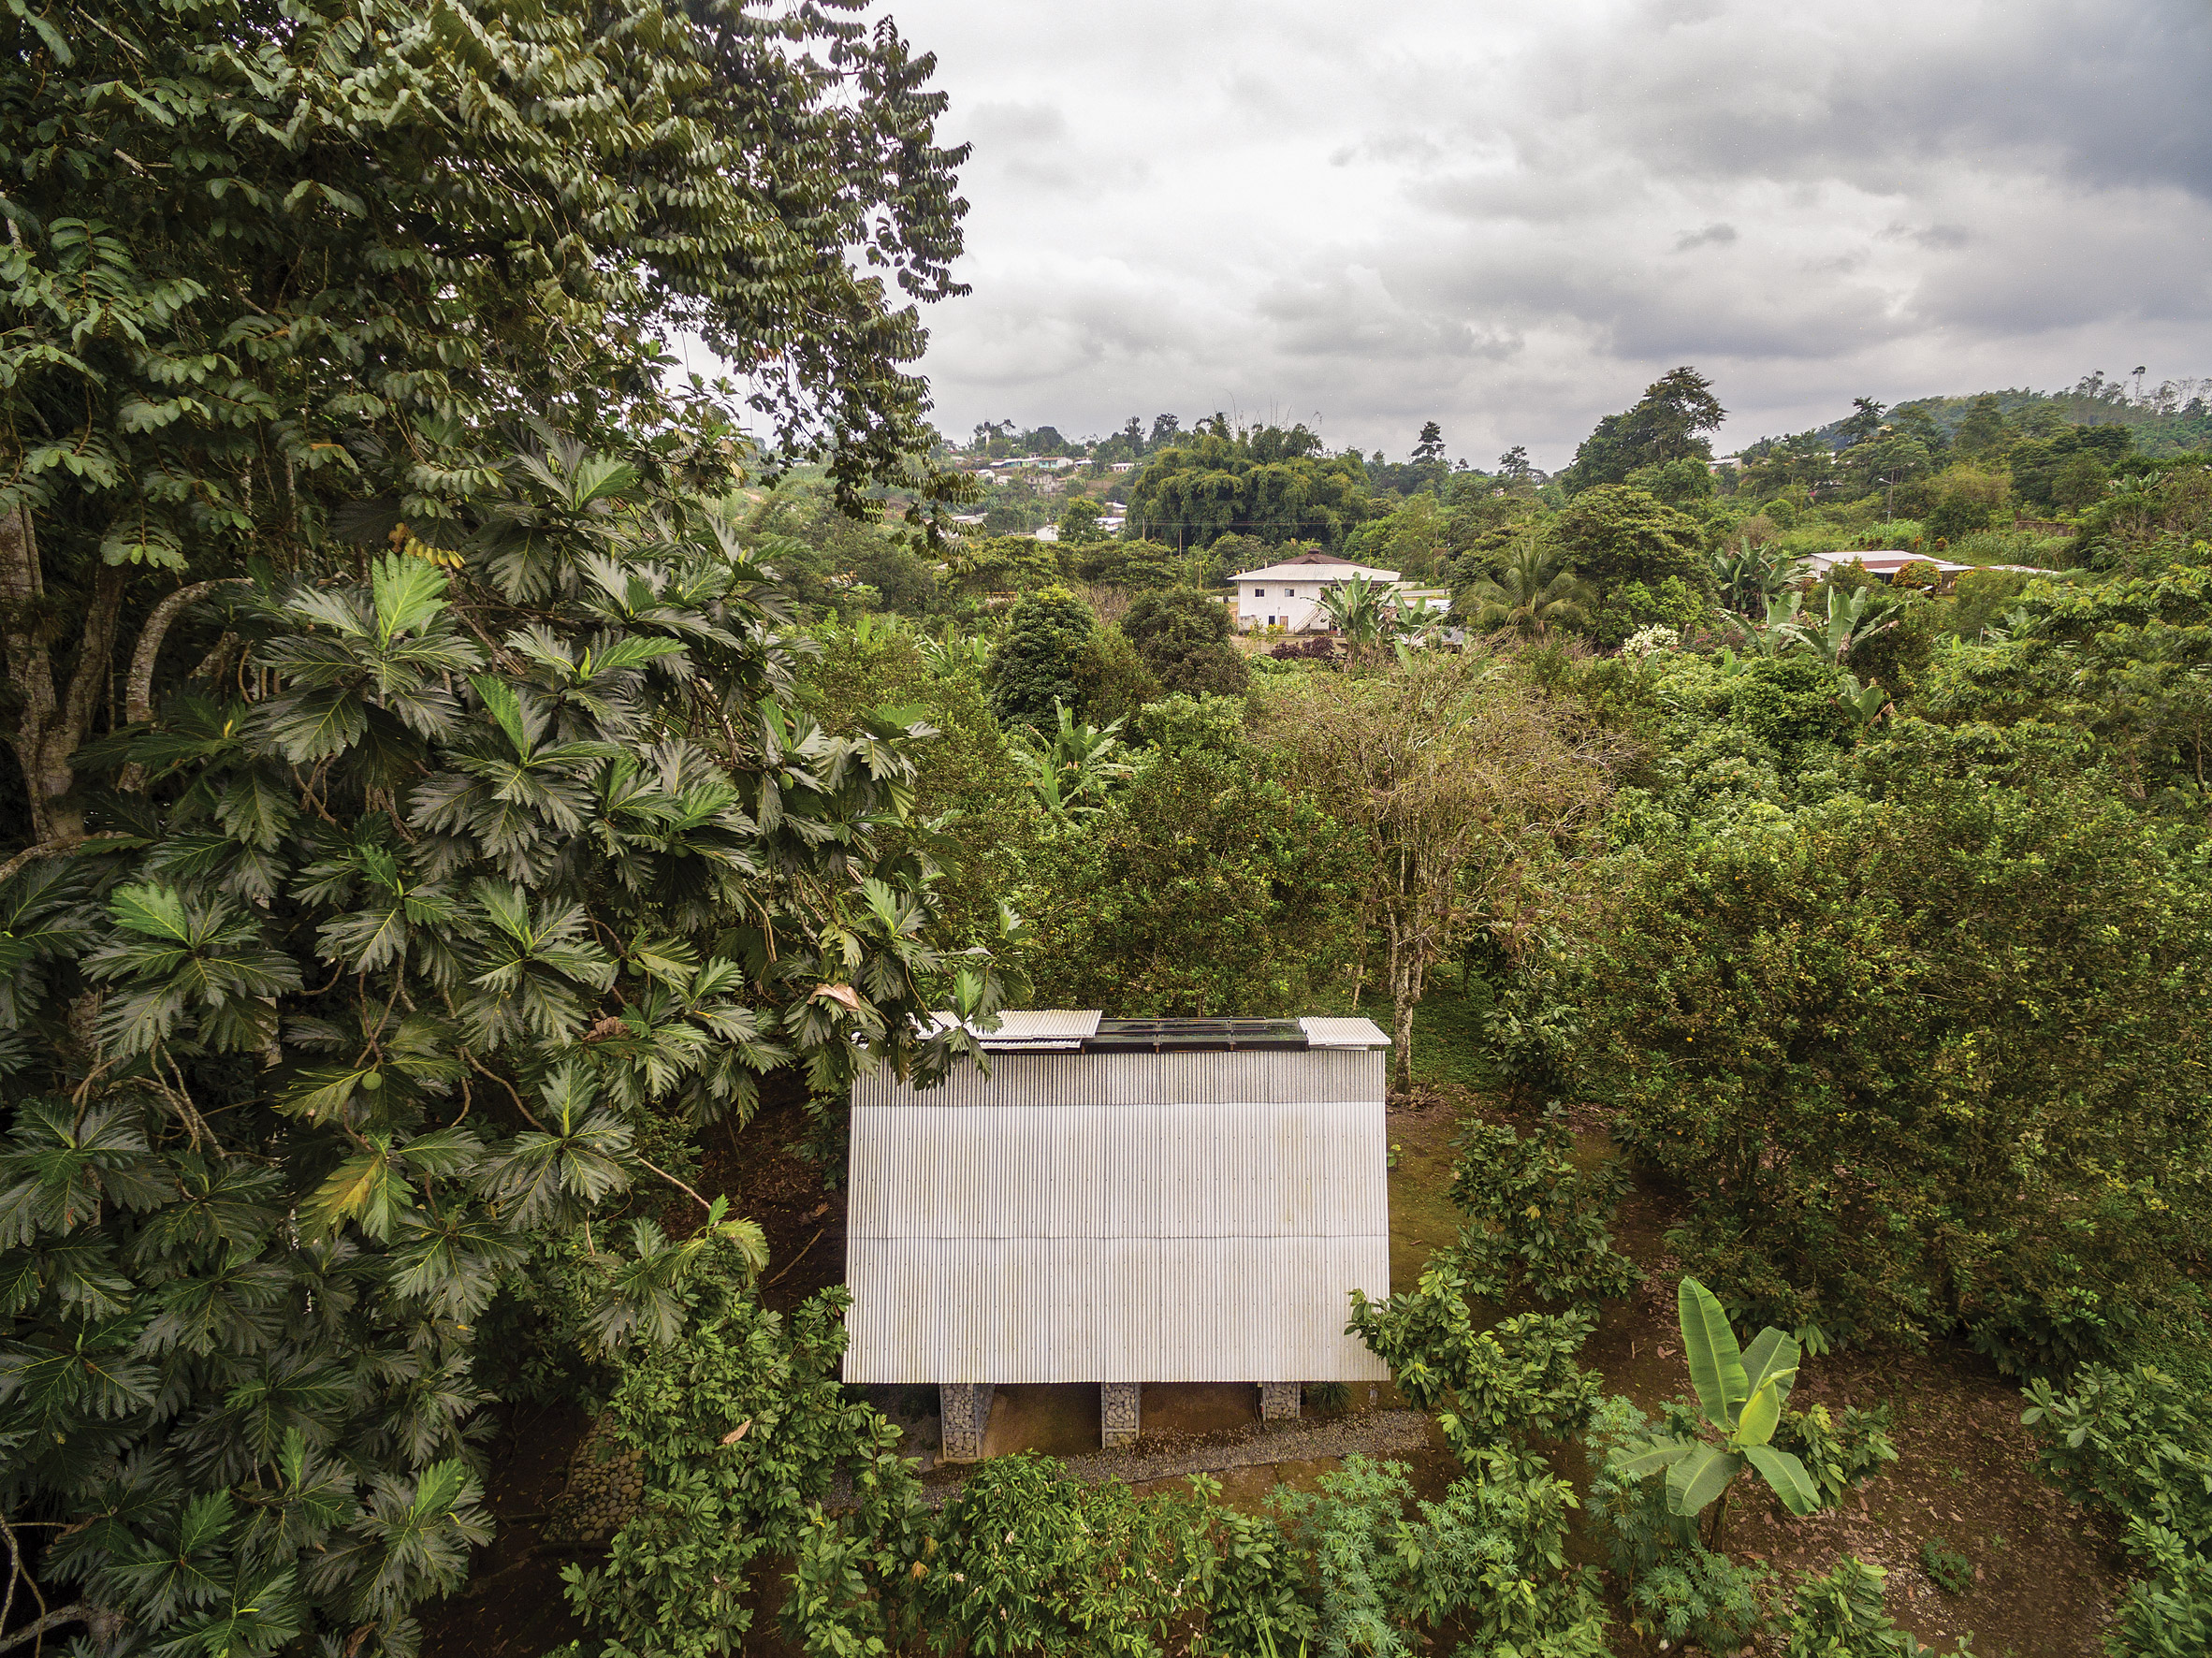 Aerial view of the Huaira by Diana Salvador and Javier Mera in Ecuador